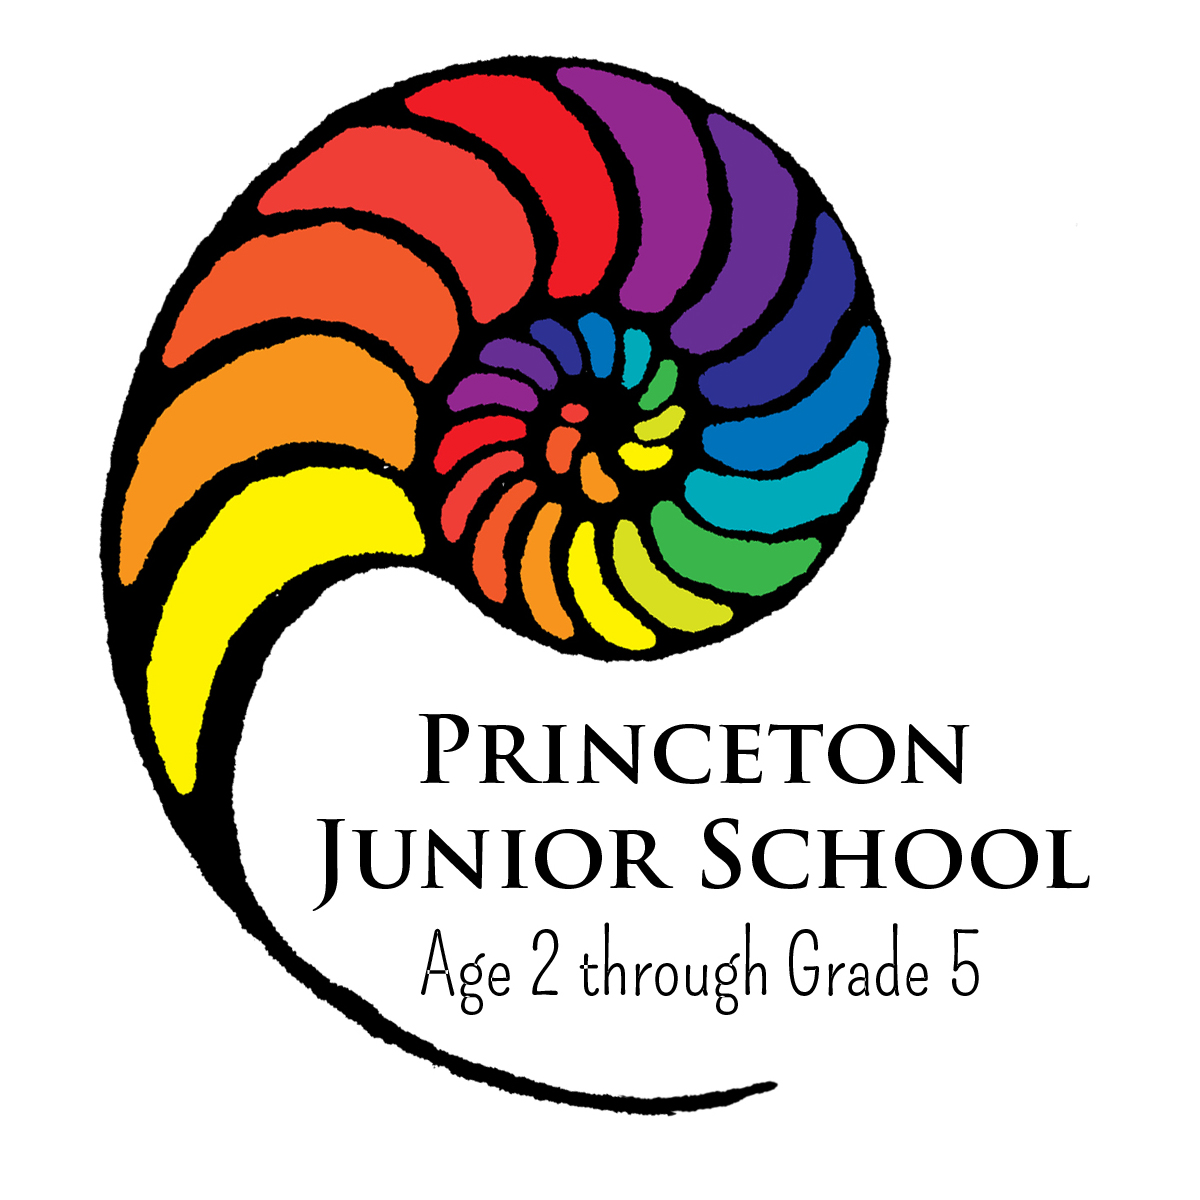 Princeton Junior School